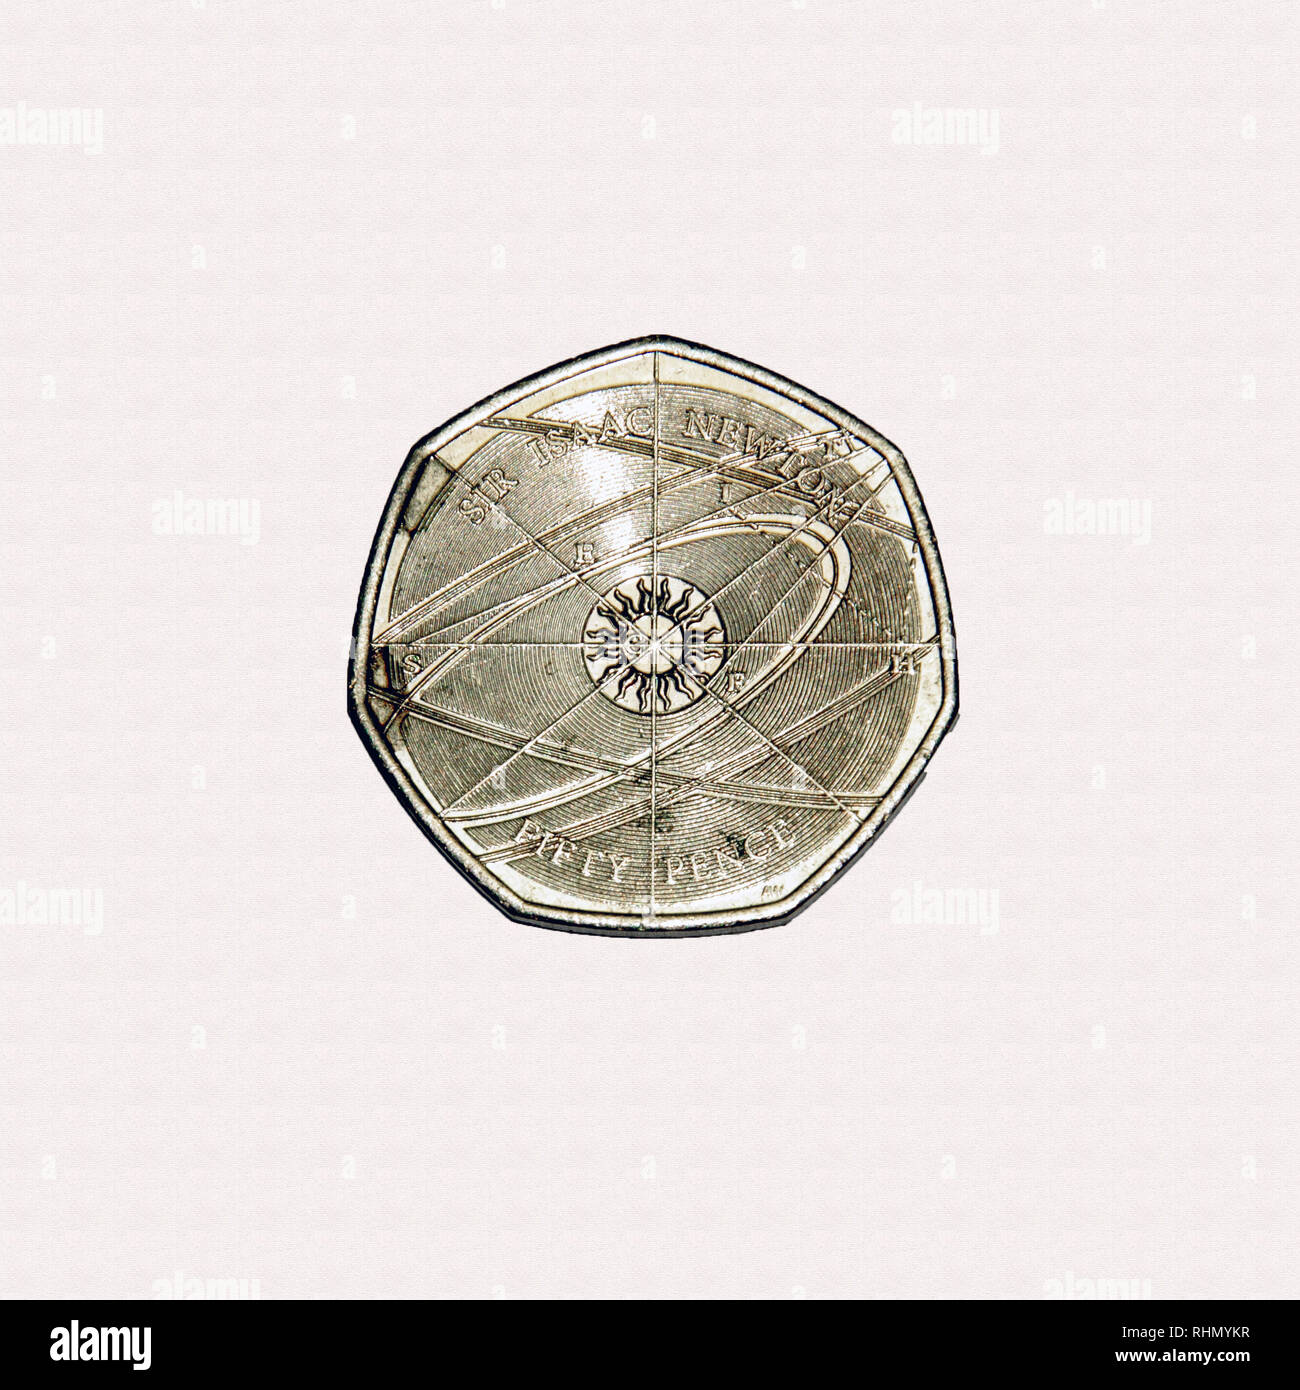 Limited edition British 50p piece coin commemorating Sir Isaac Newton the influential scientist Stock Photo